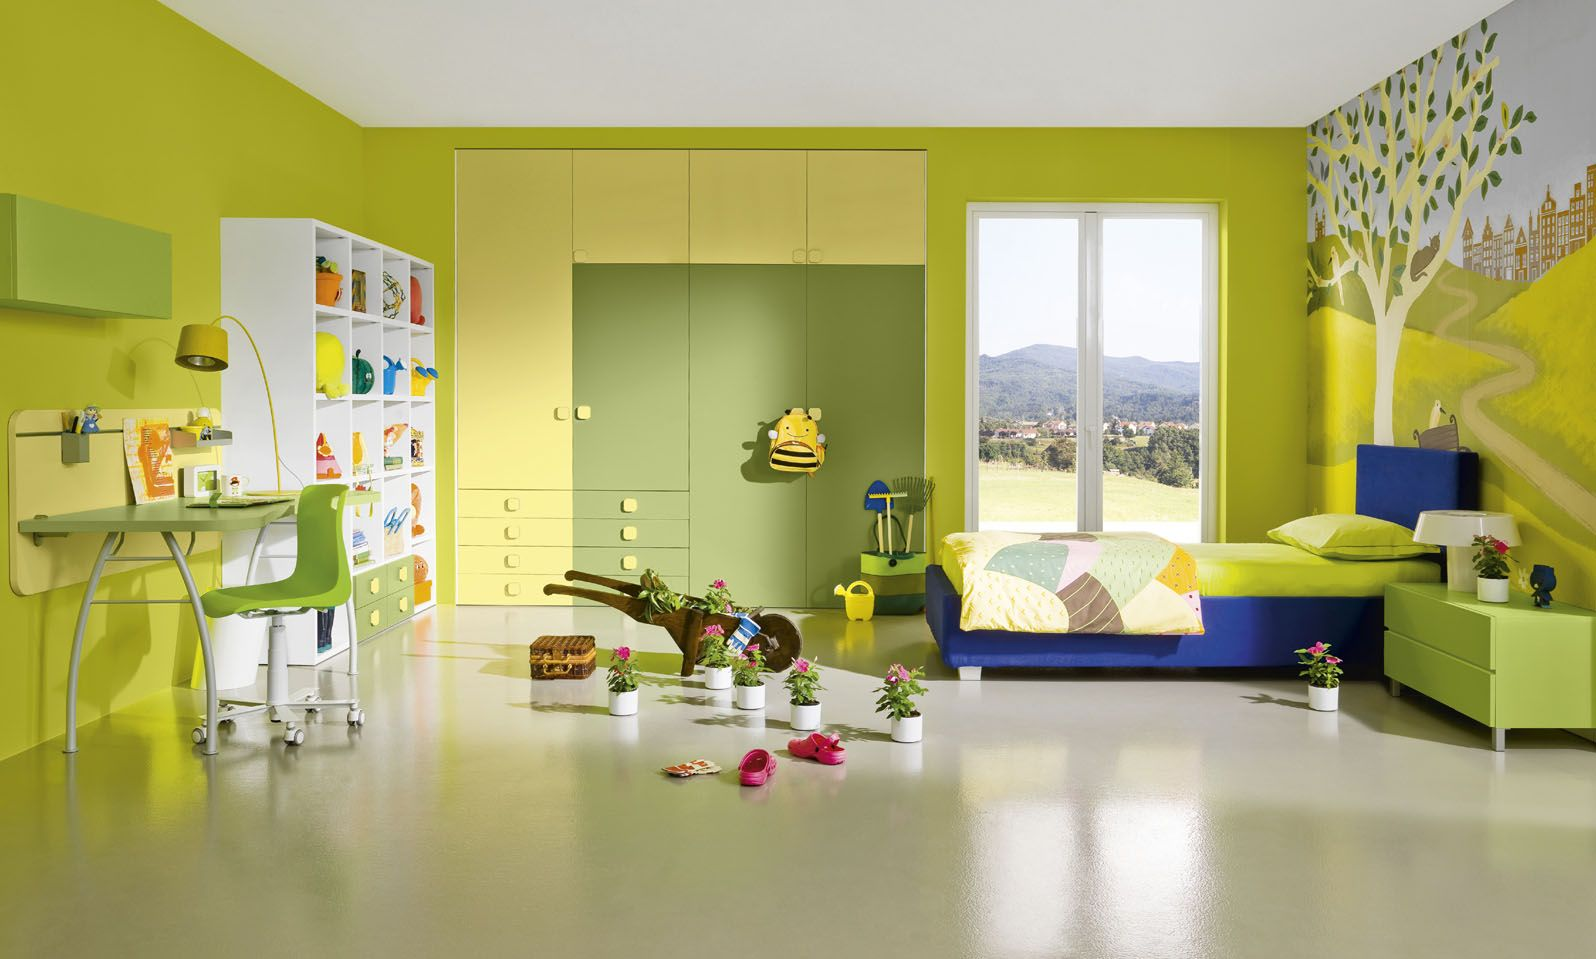 Green wall painting colors for boy bedroom interior with workspace ...